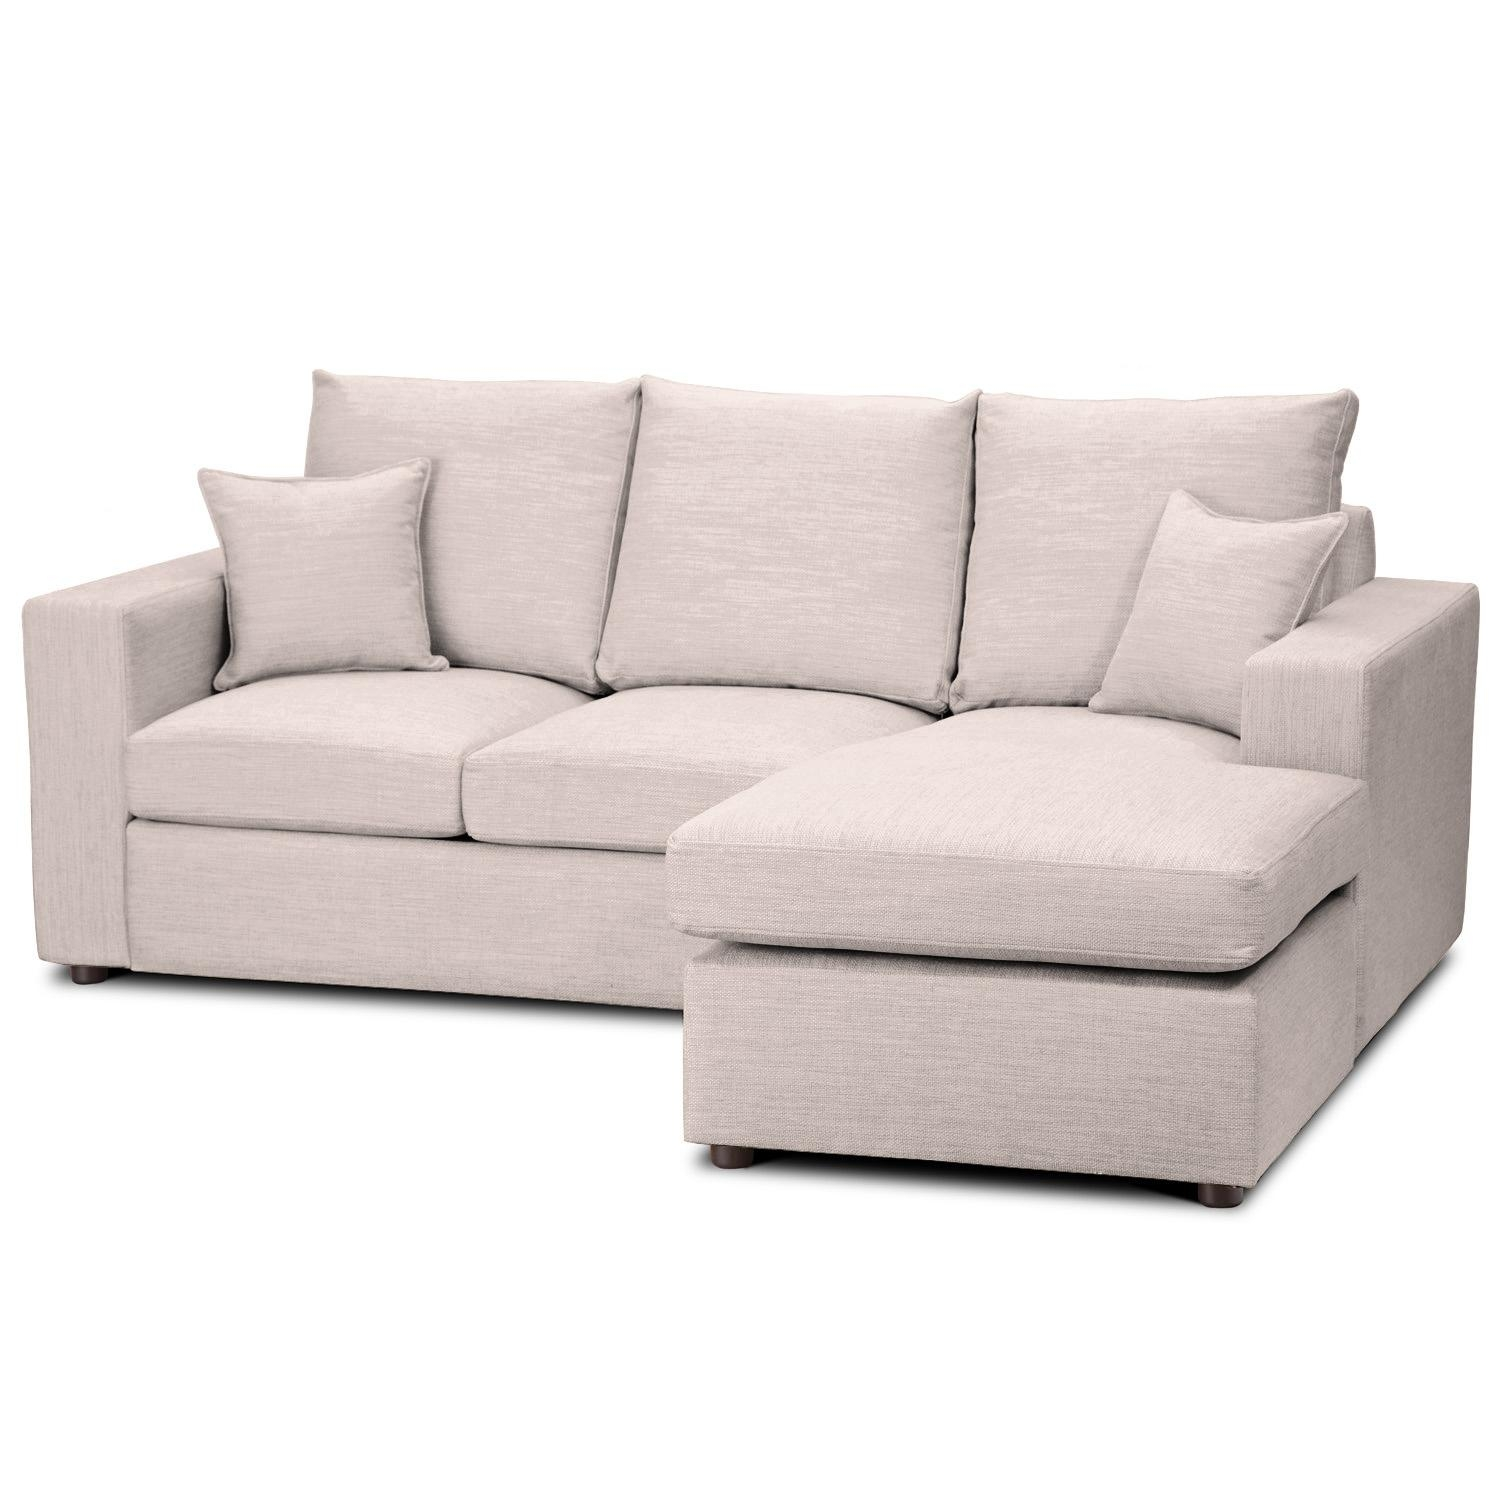 Furniture: Vivacious Chaise Sofa Bed With Softly Bed Foam For pertaining to Cushion Sofa Beds